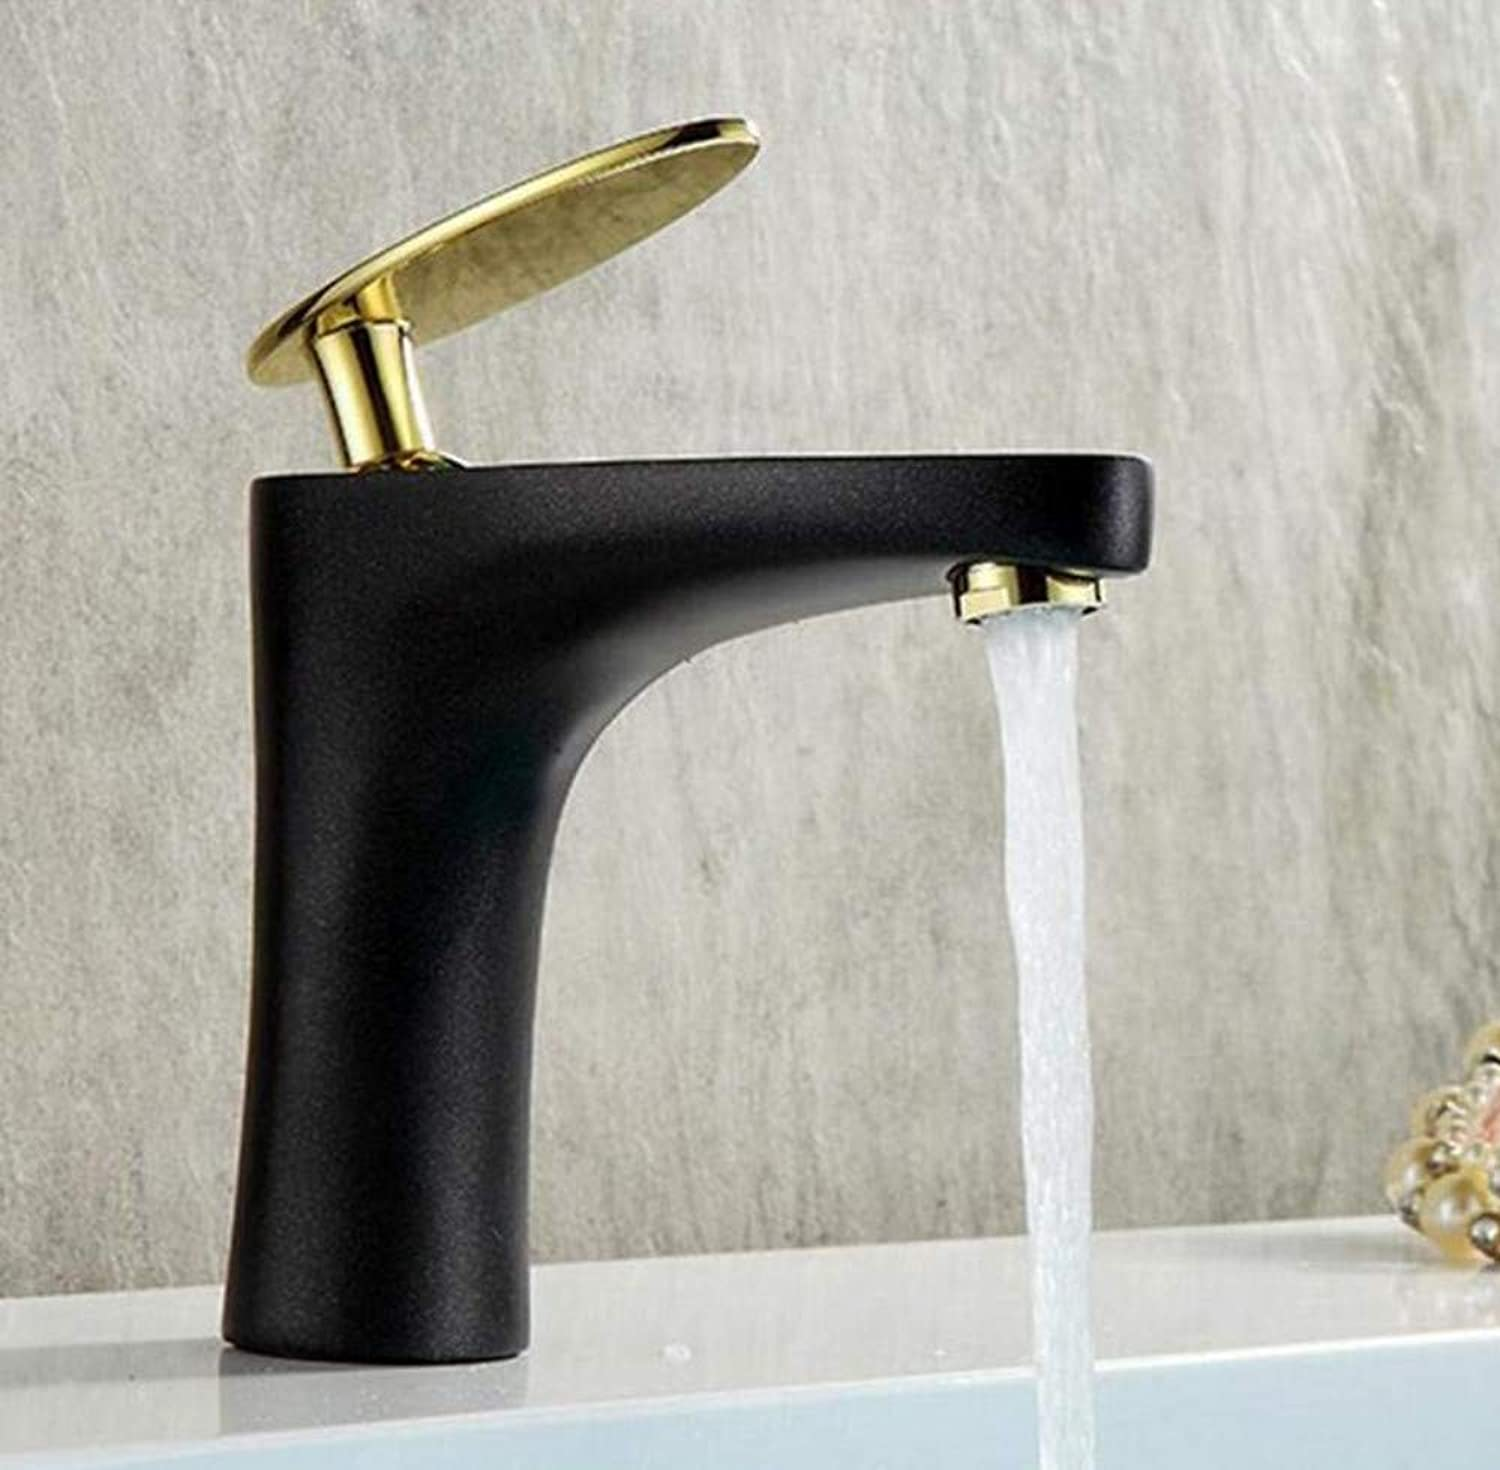 Kitchen Brass Hot and Cold Water Faucet Washbasin Mixer White Painting Basin Sink Mixer Tap Hot&Cold Leaves Faucet